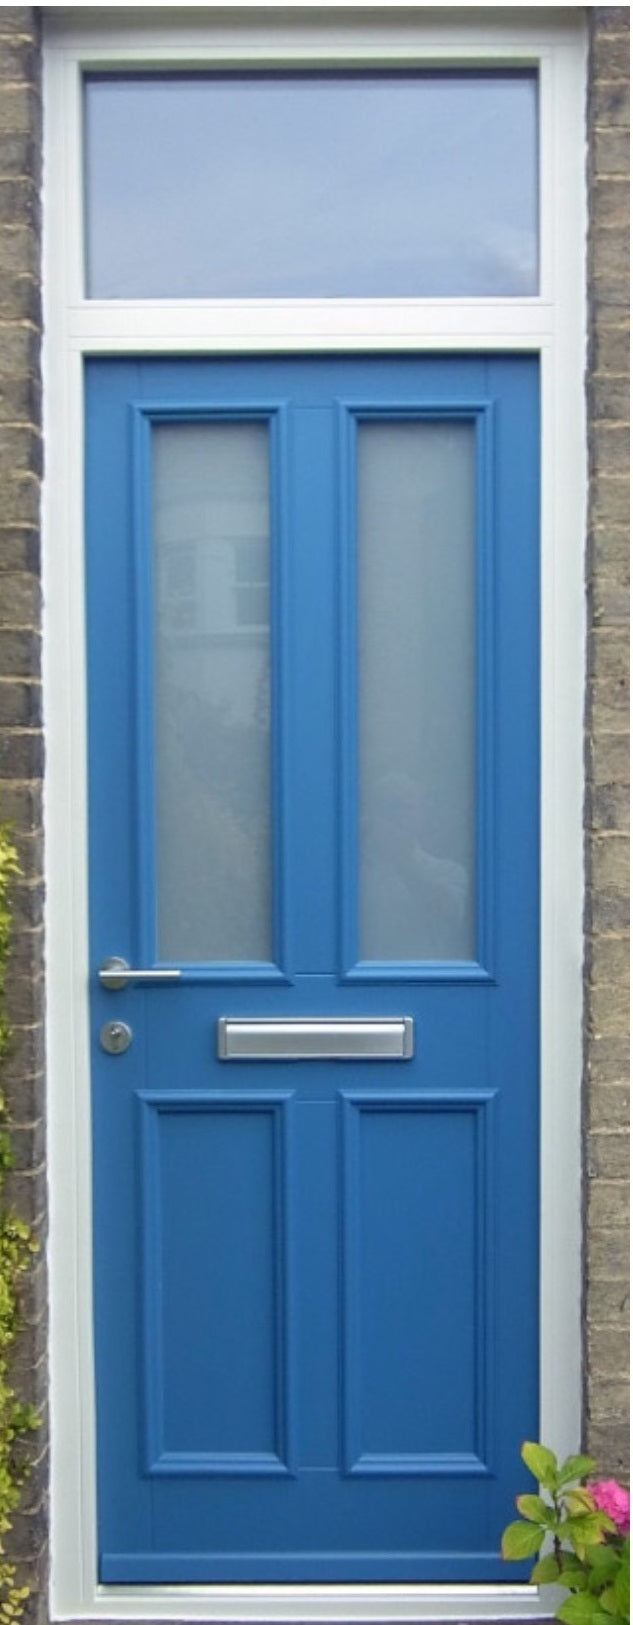 Kloeber Kensington External Door and toplight